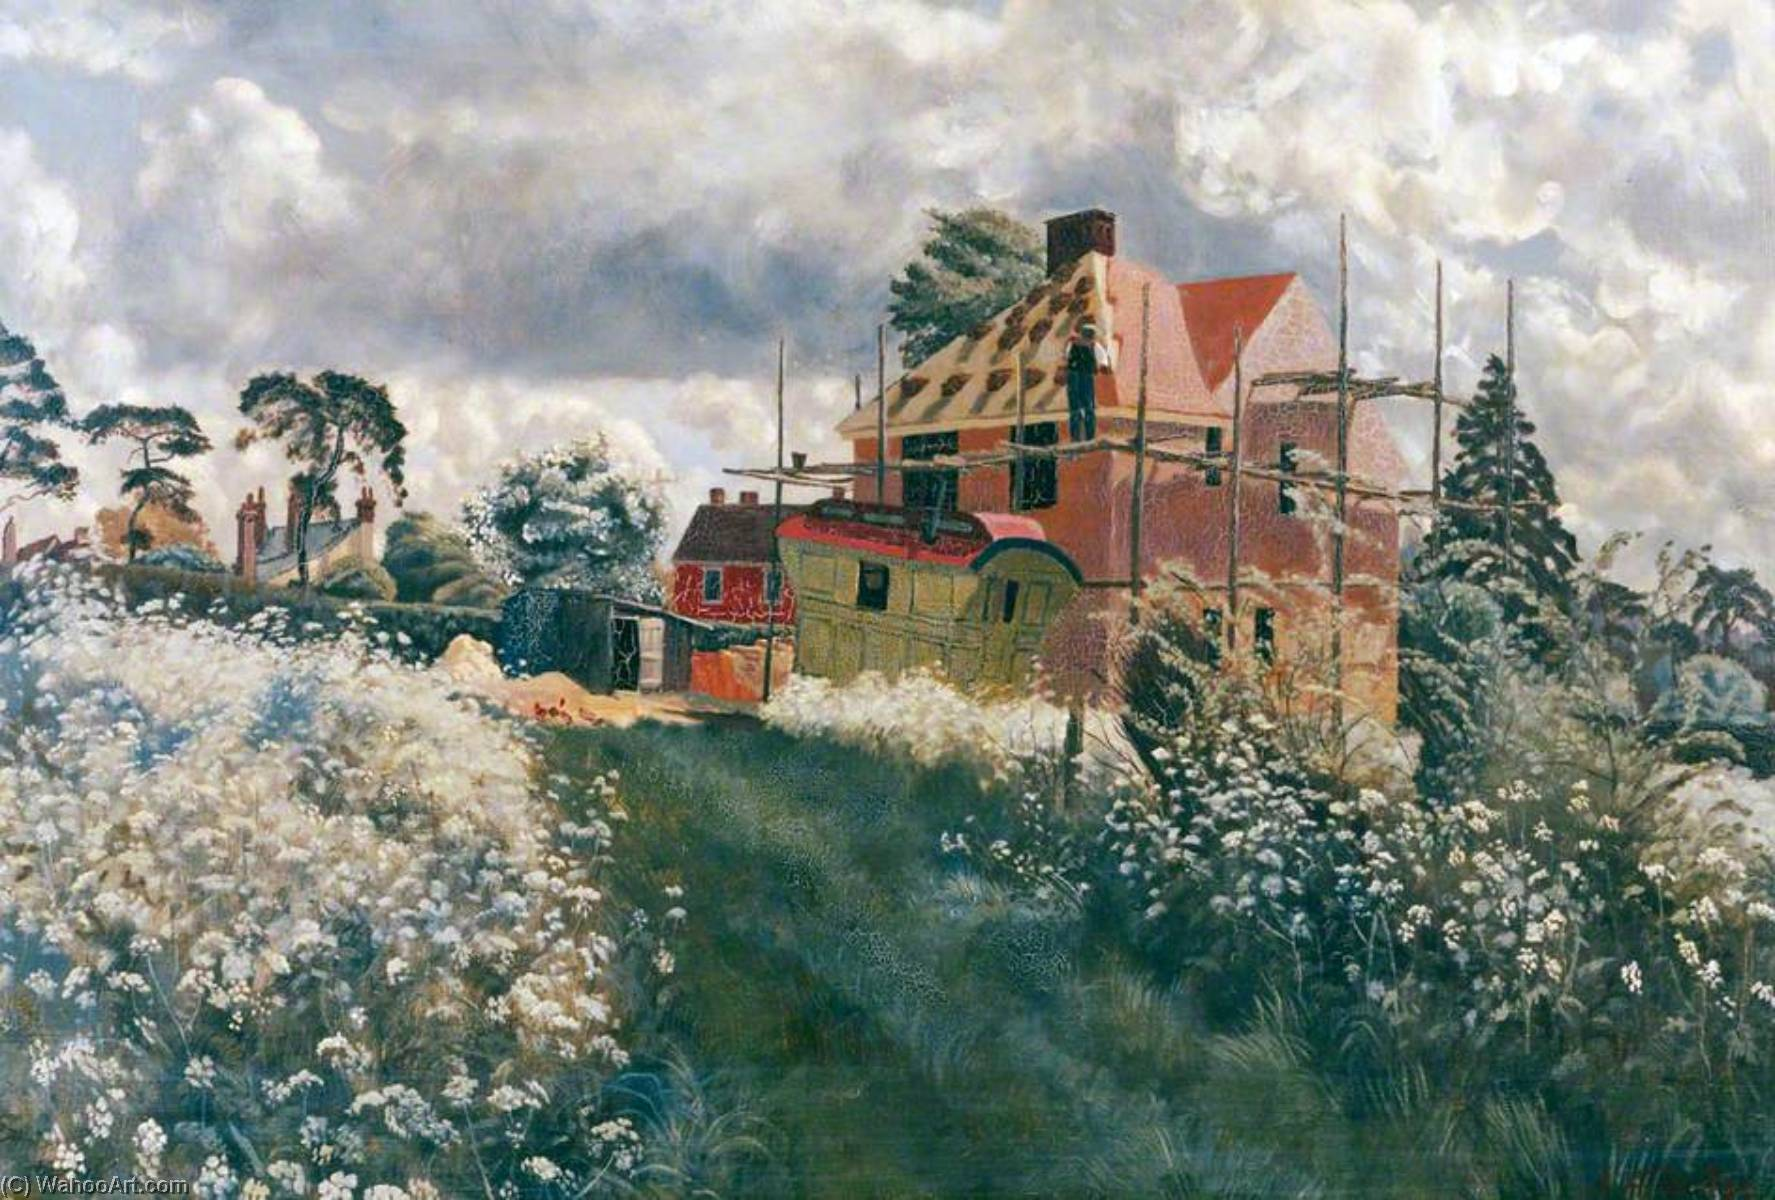 Roofing a New House, Oil On Canvas by John Arthur Malcolm Aldridge